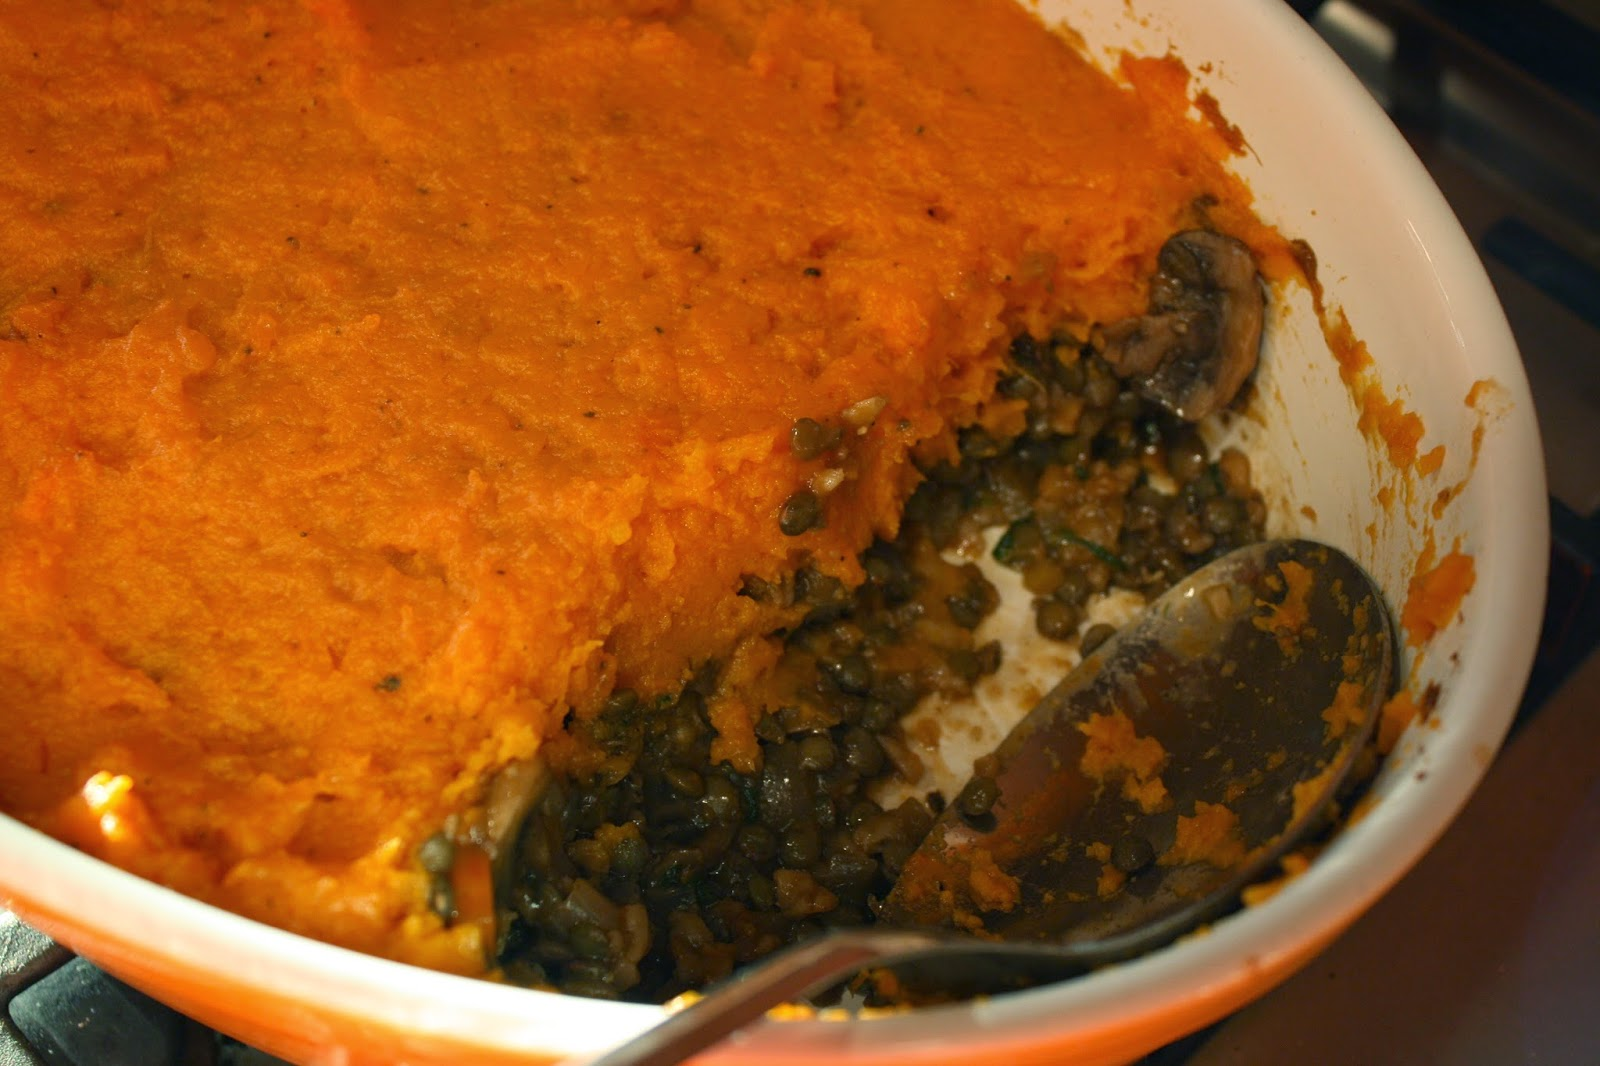 ... -Free Girl: Shepherd's Pie with Lentils, Mushrooms and Sweet Potato